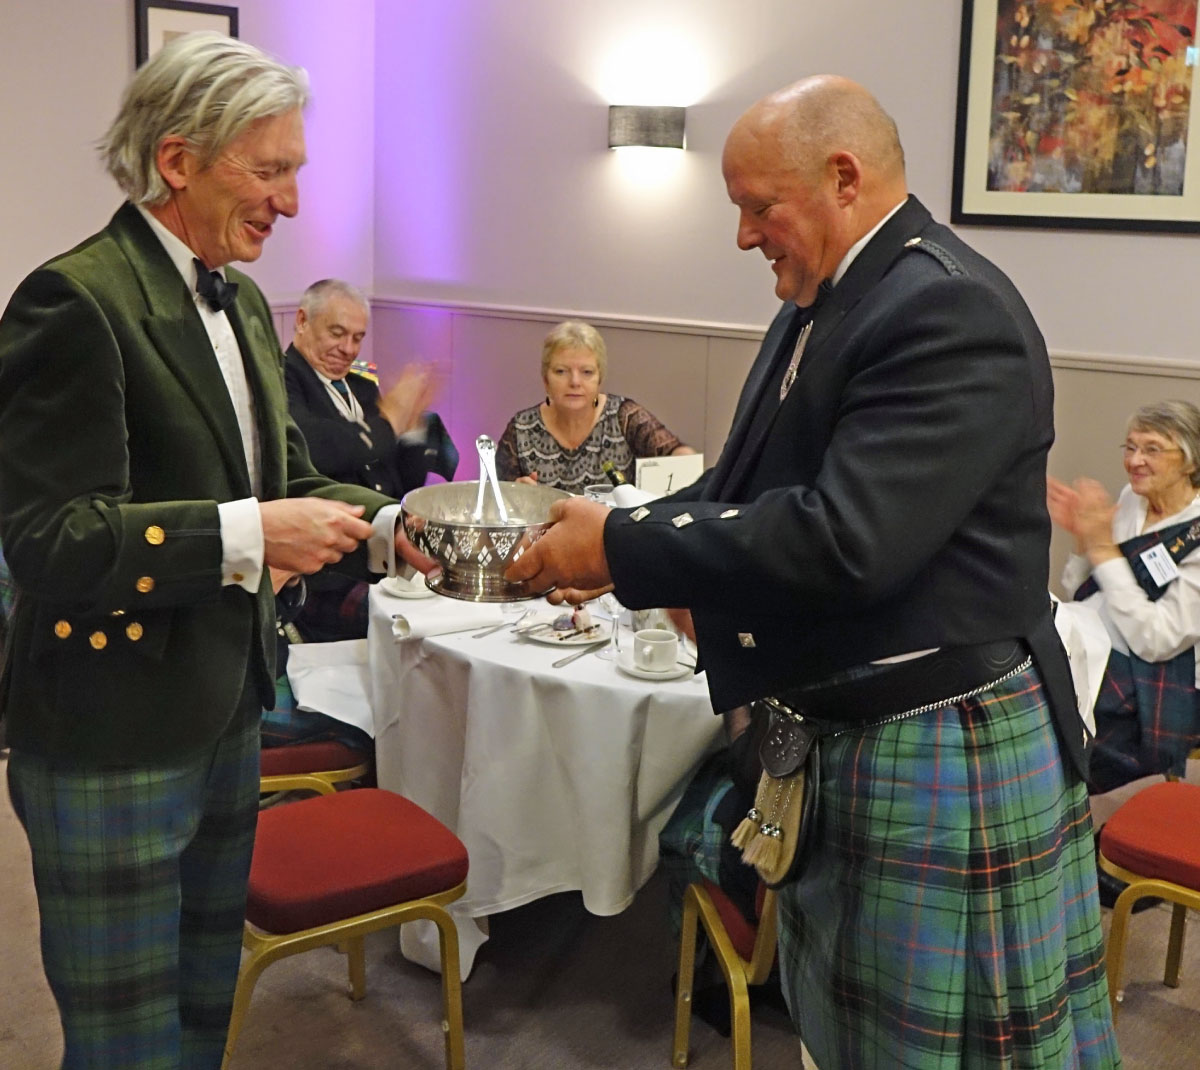 Presentation of gift to Clan Chief (on right)